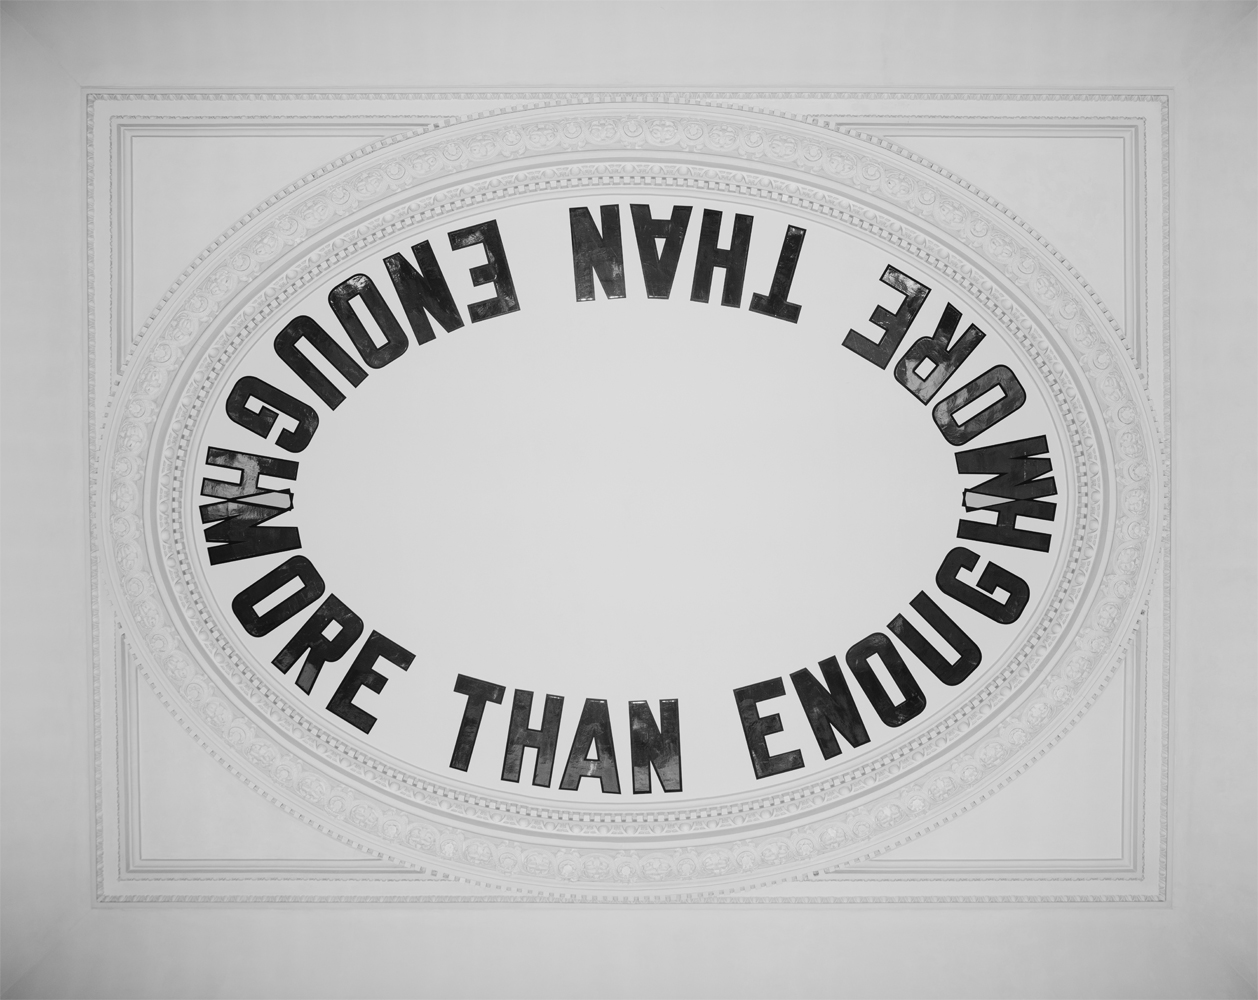 and Lawrence Weiner MORE THAN ENOUGH, 2015 From Lawrence Weiner: Within a Realm of Distance at Blenheim Palace, 2015, ceiling of the Long Library, 2016